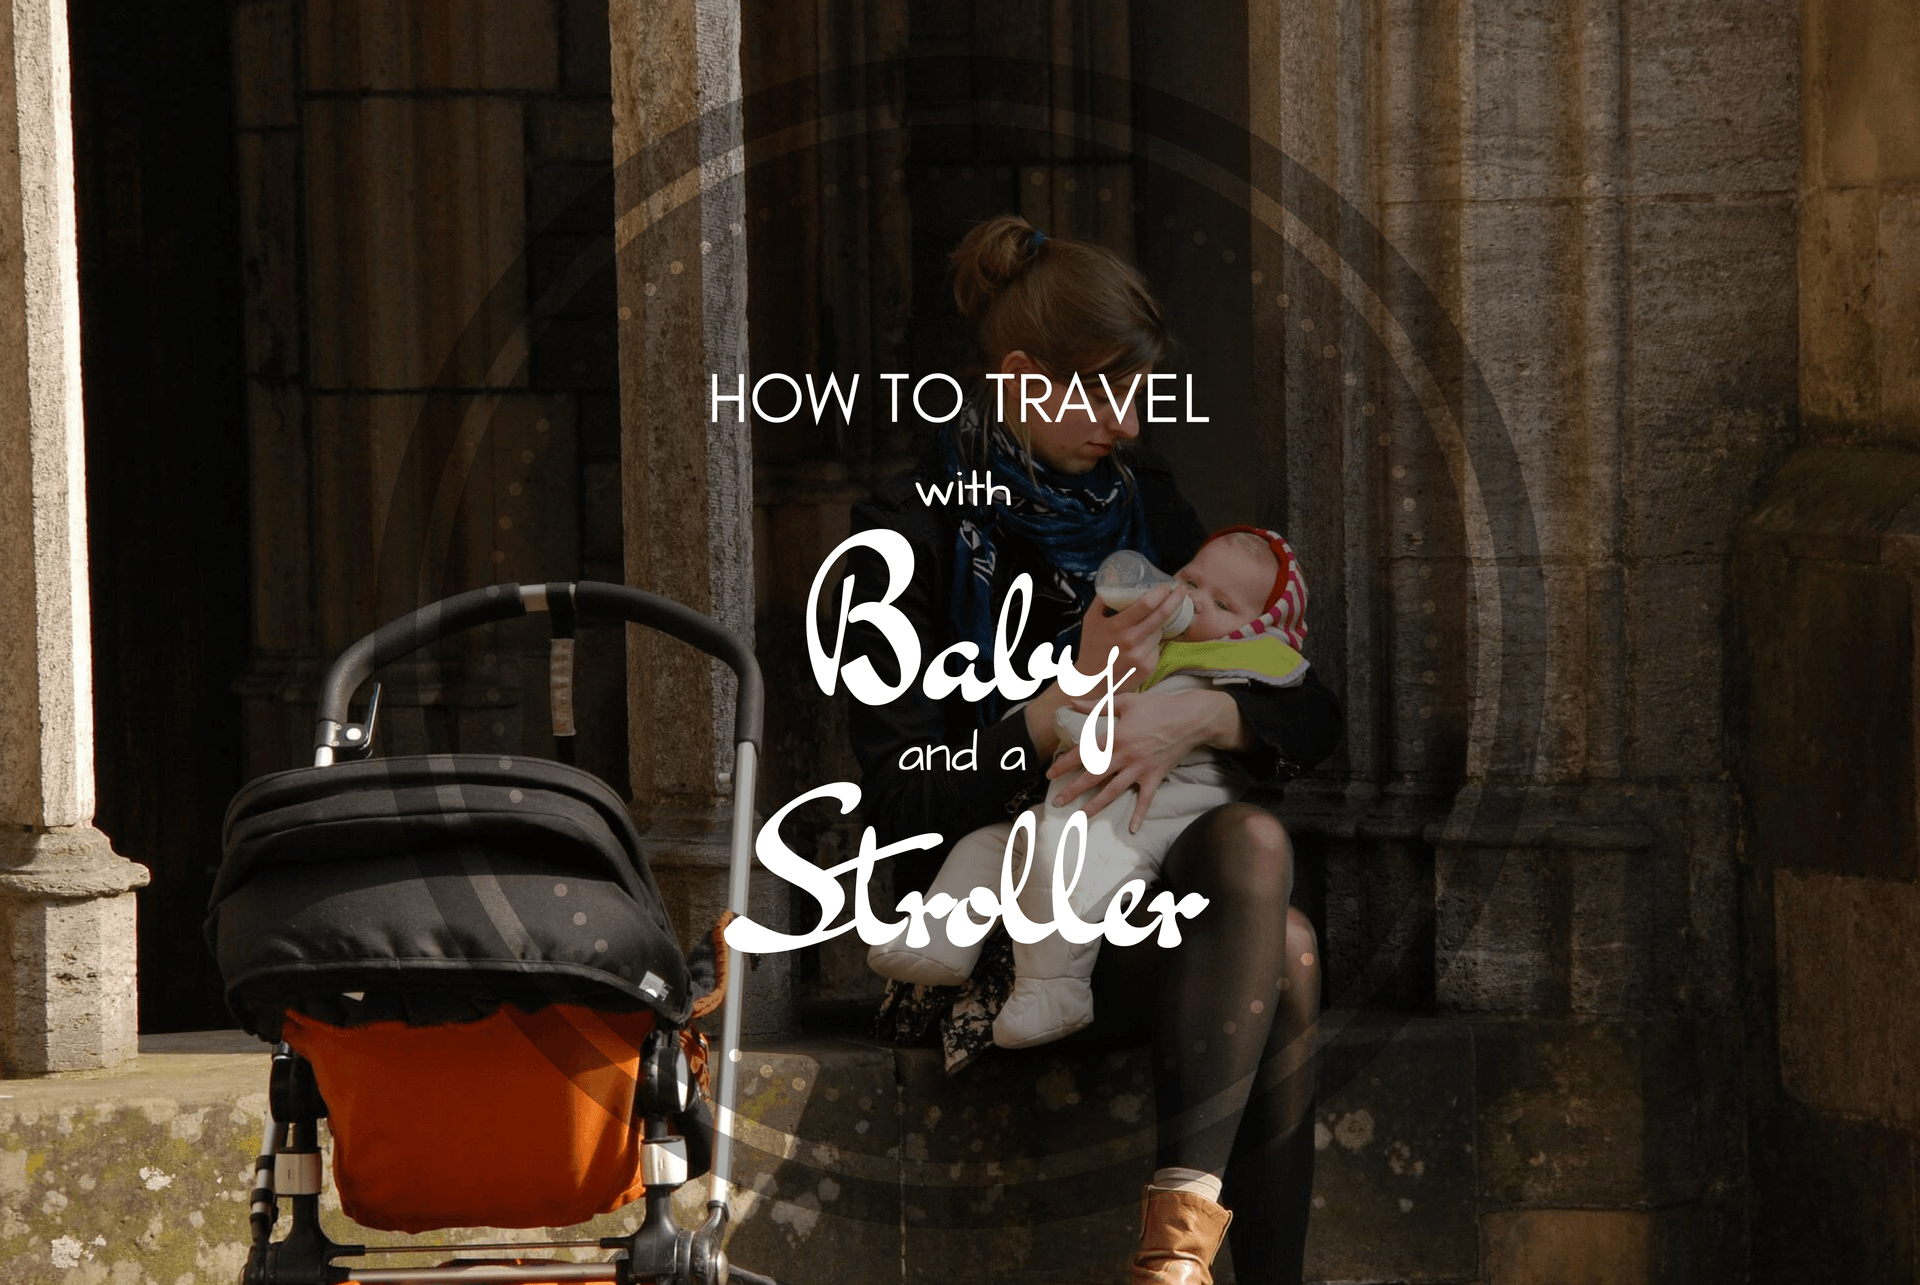 How to Travel with Baby and a Stroller